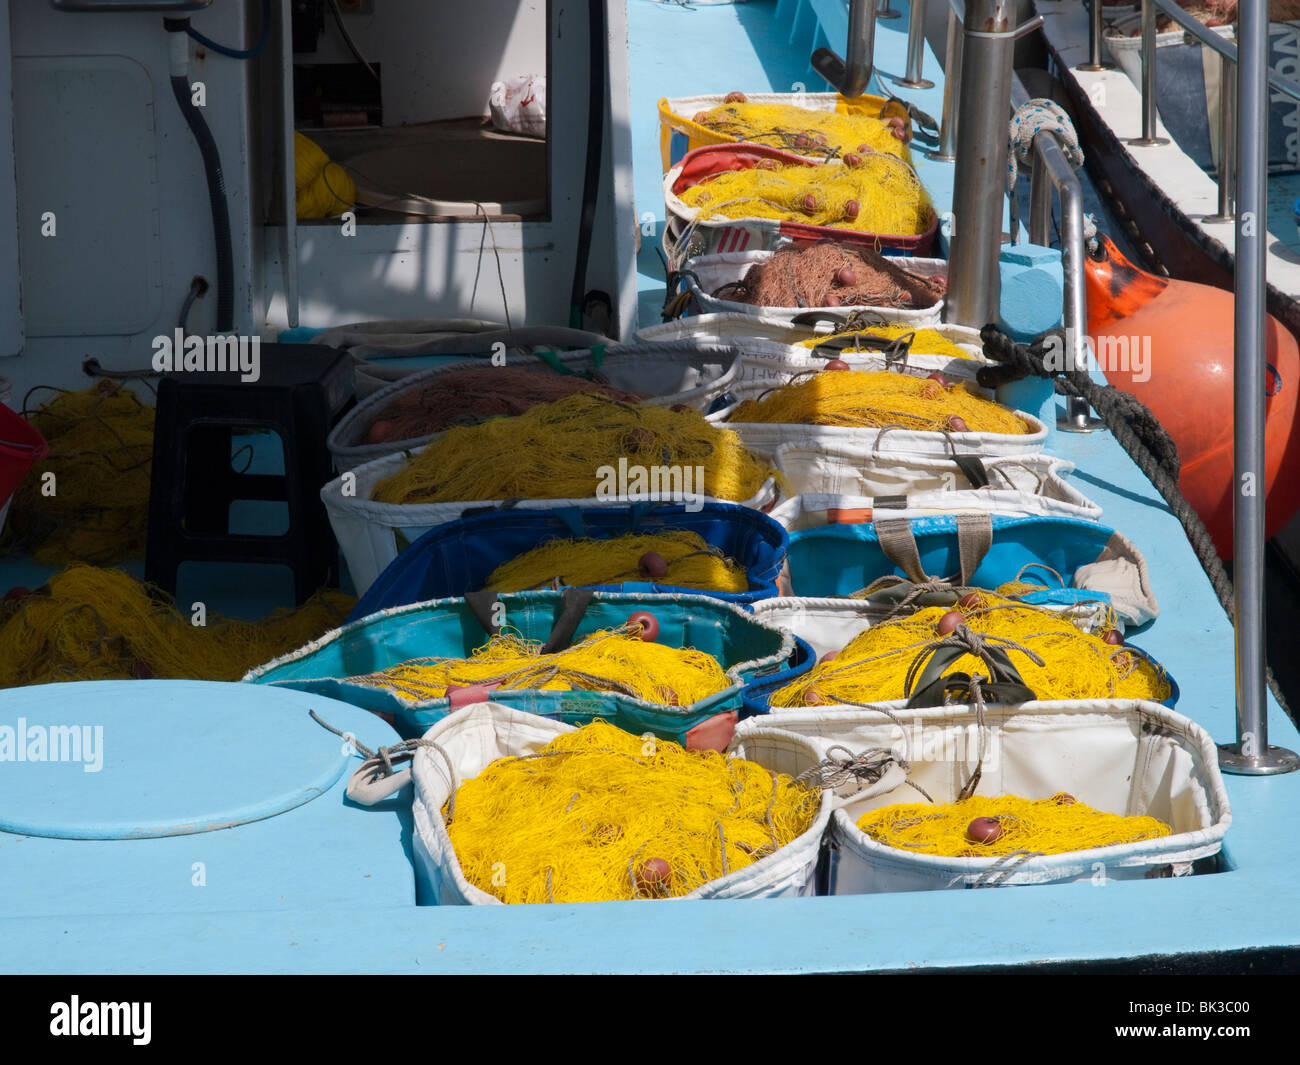 A fishing boat in the Harbour in Paphos, Cyprus Europe - Stock Image